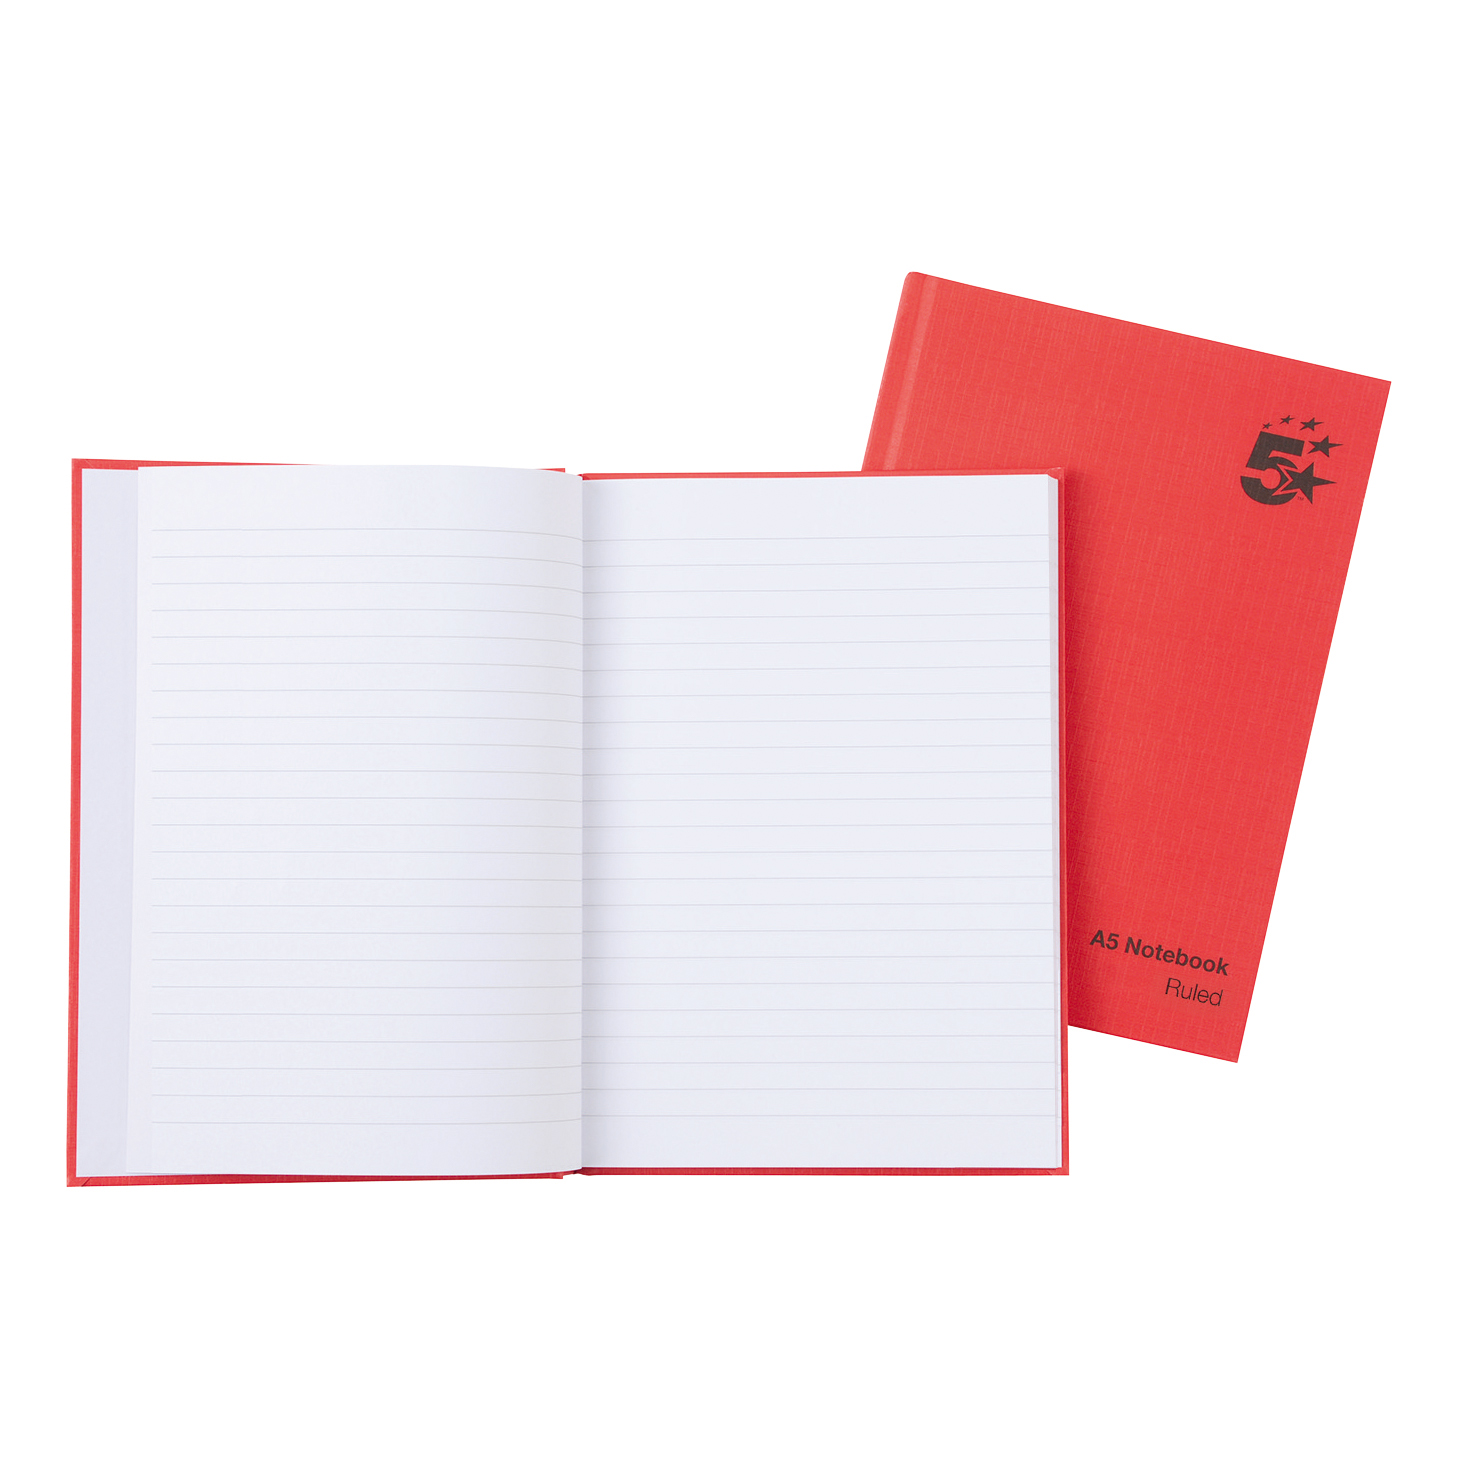 Notebooks 5 Star Office Manuscript Notebook Casebound 70gsm Ruled 192pp A5 Red Pack 5